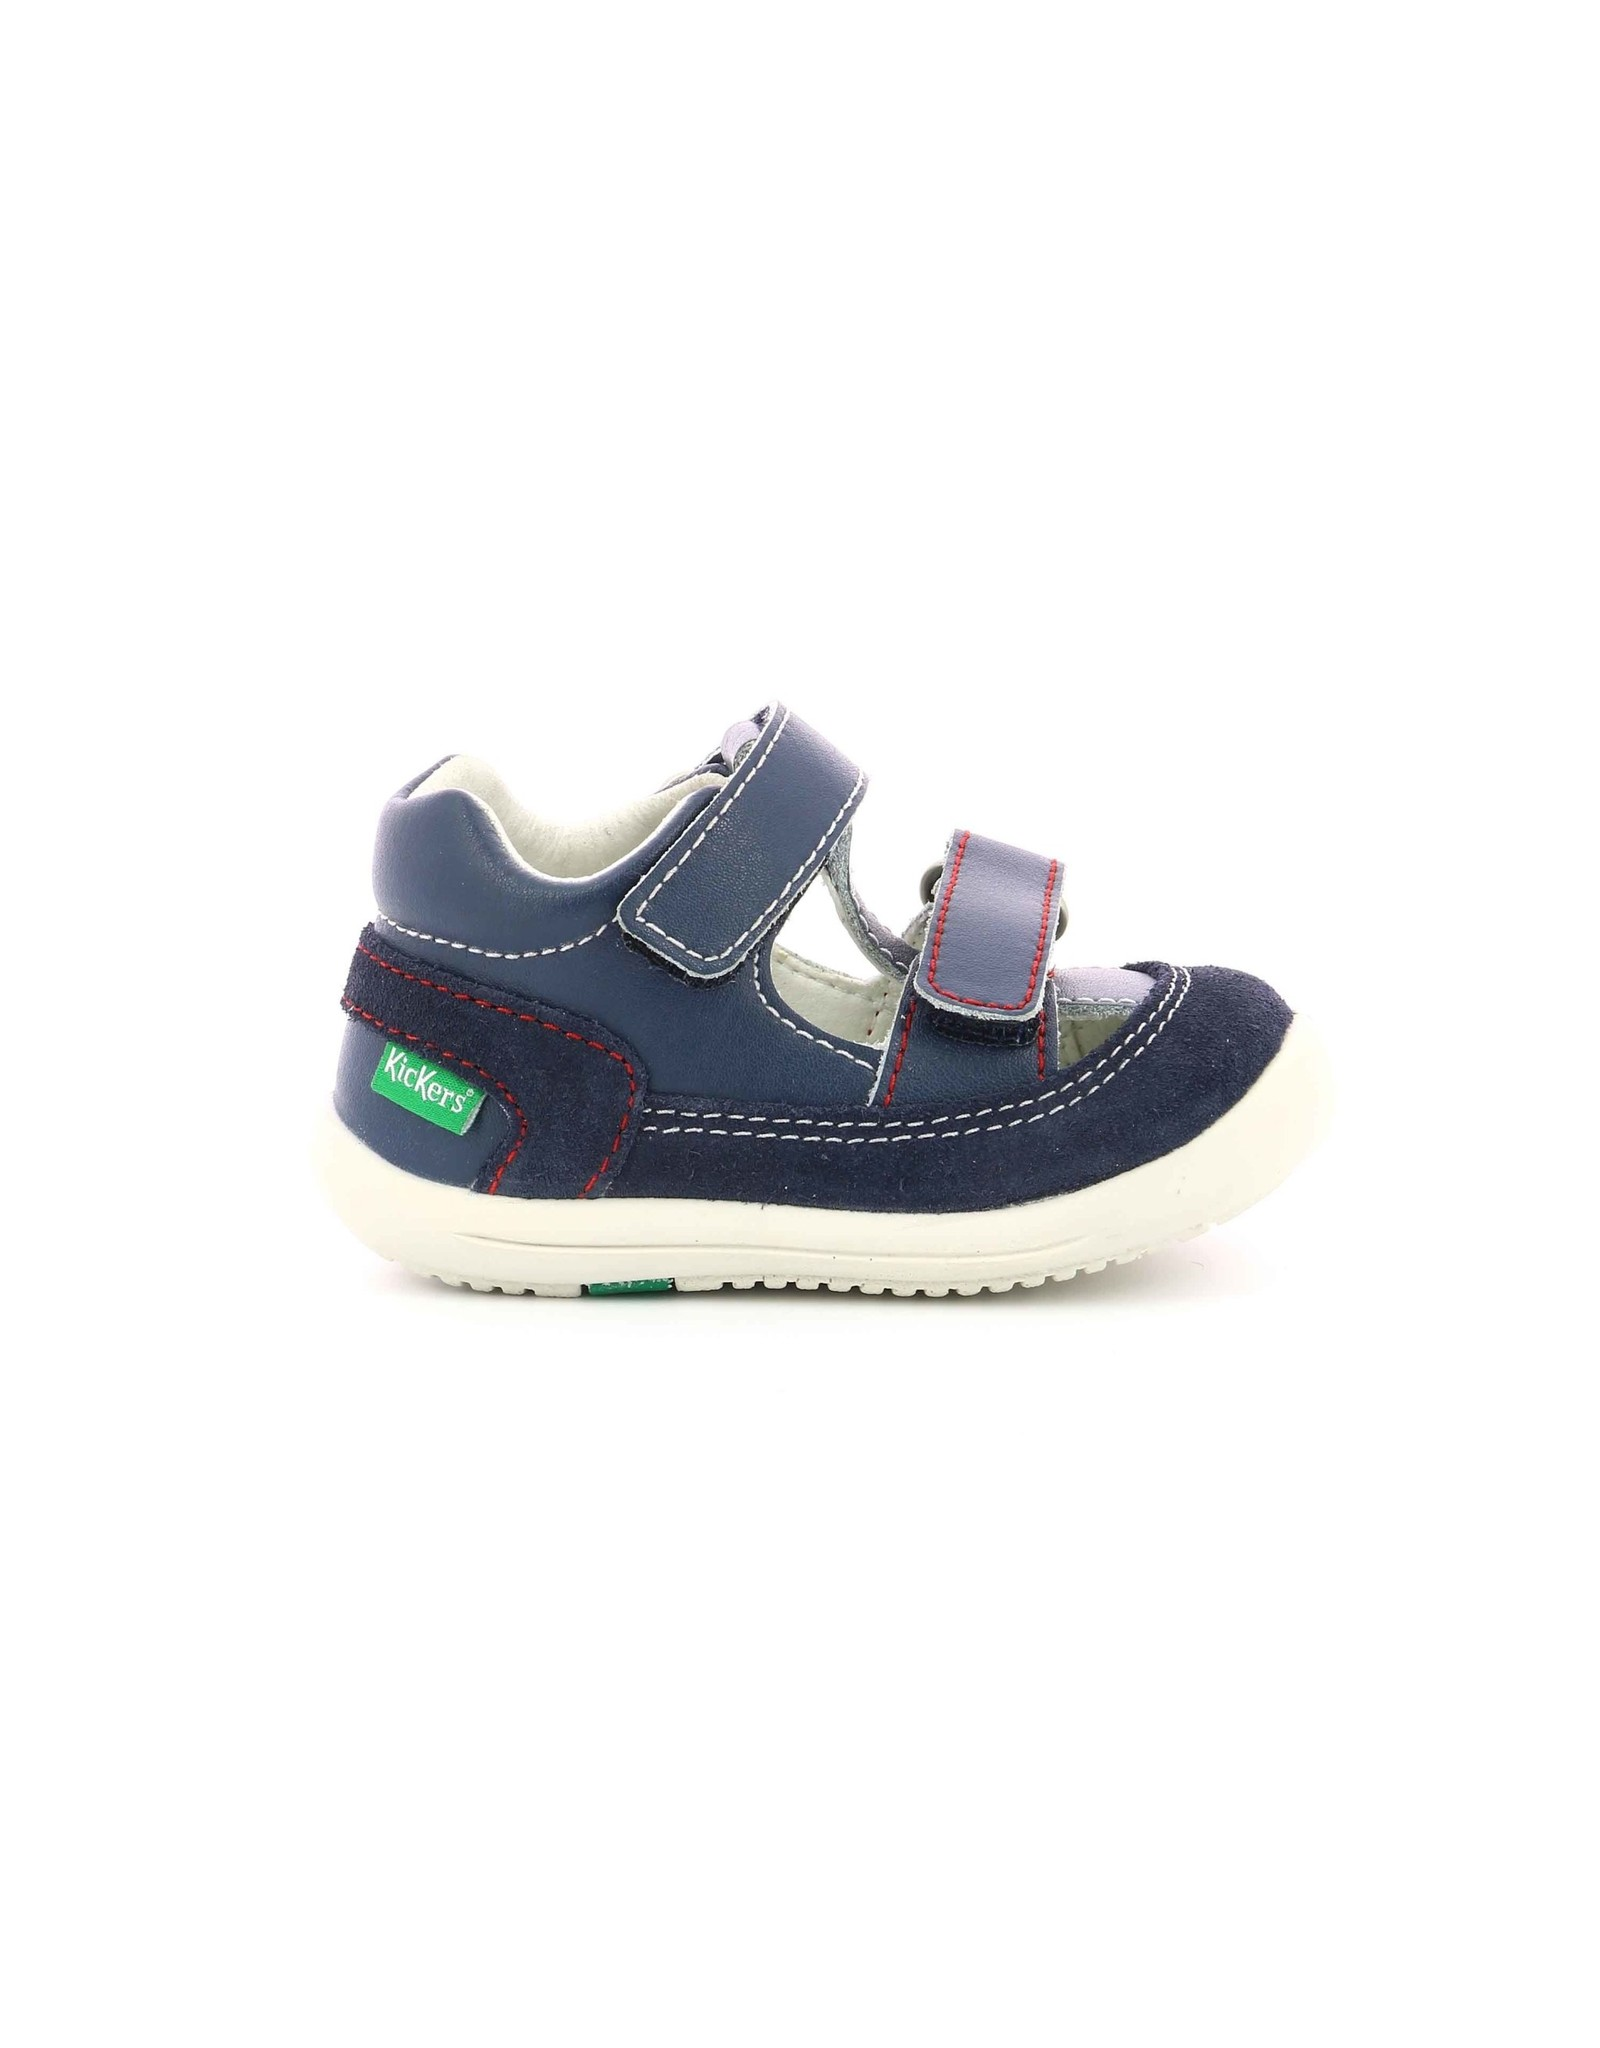 kickers shoes for kids